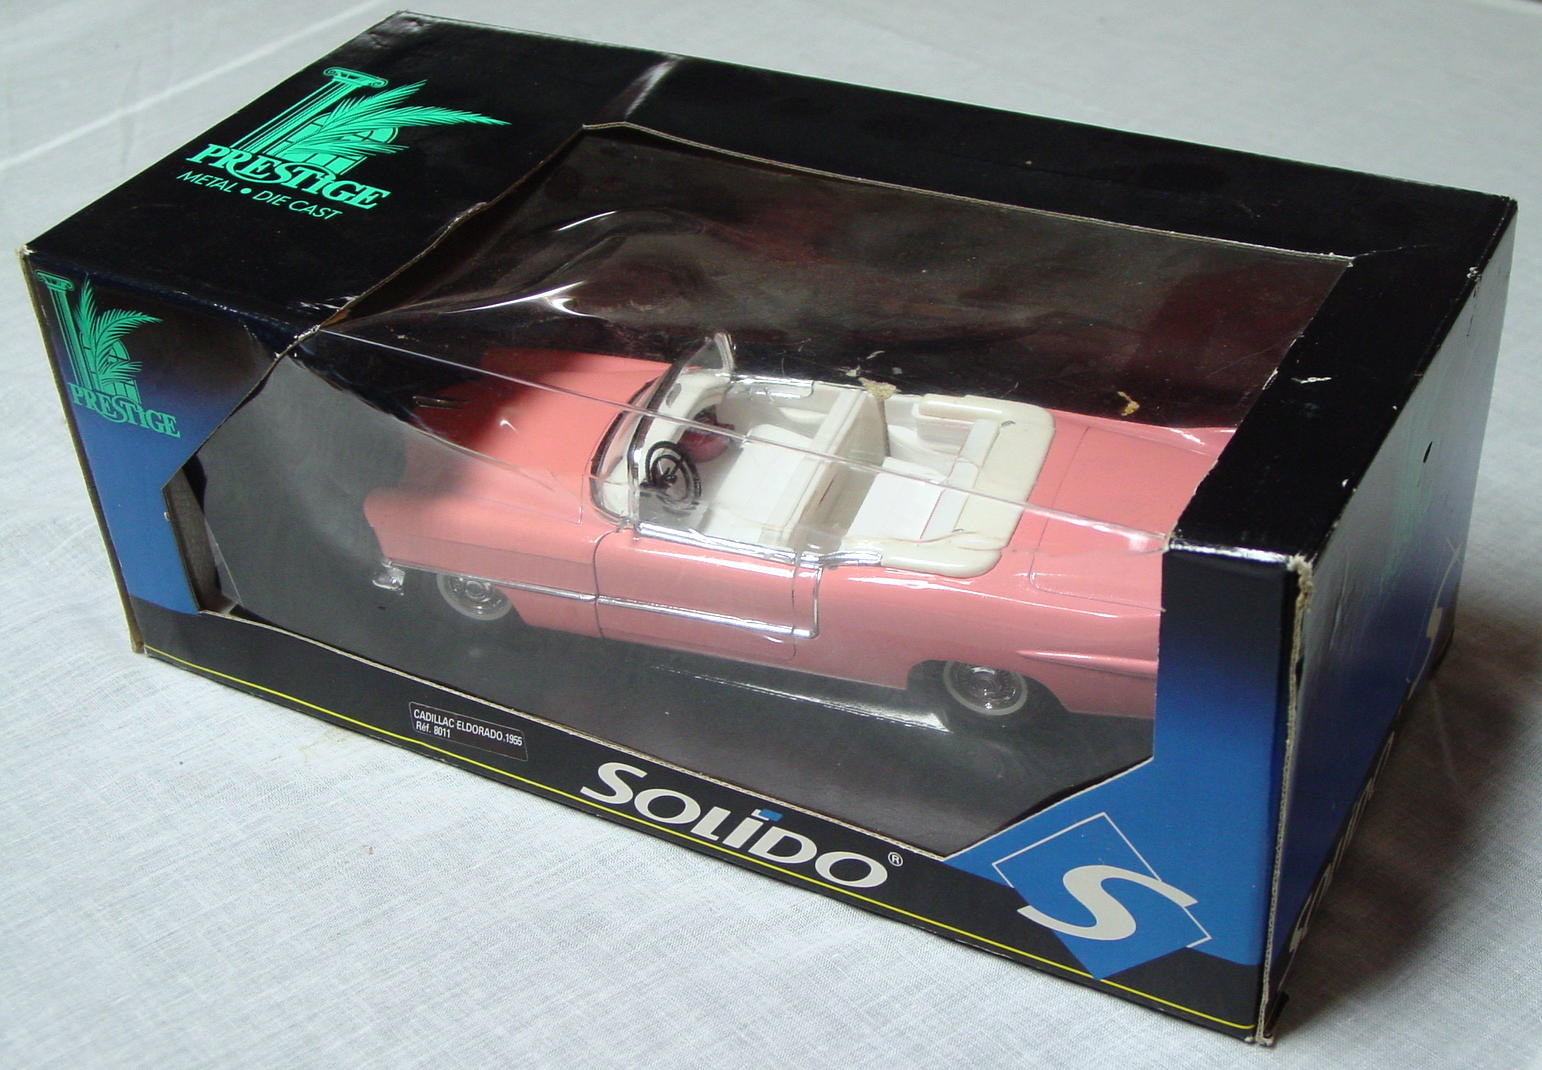 1_18 Scale - SOLIDO 55 Caddy Eldorado Conv Pink